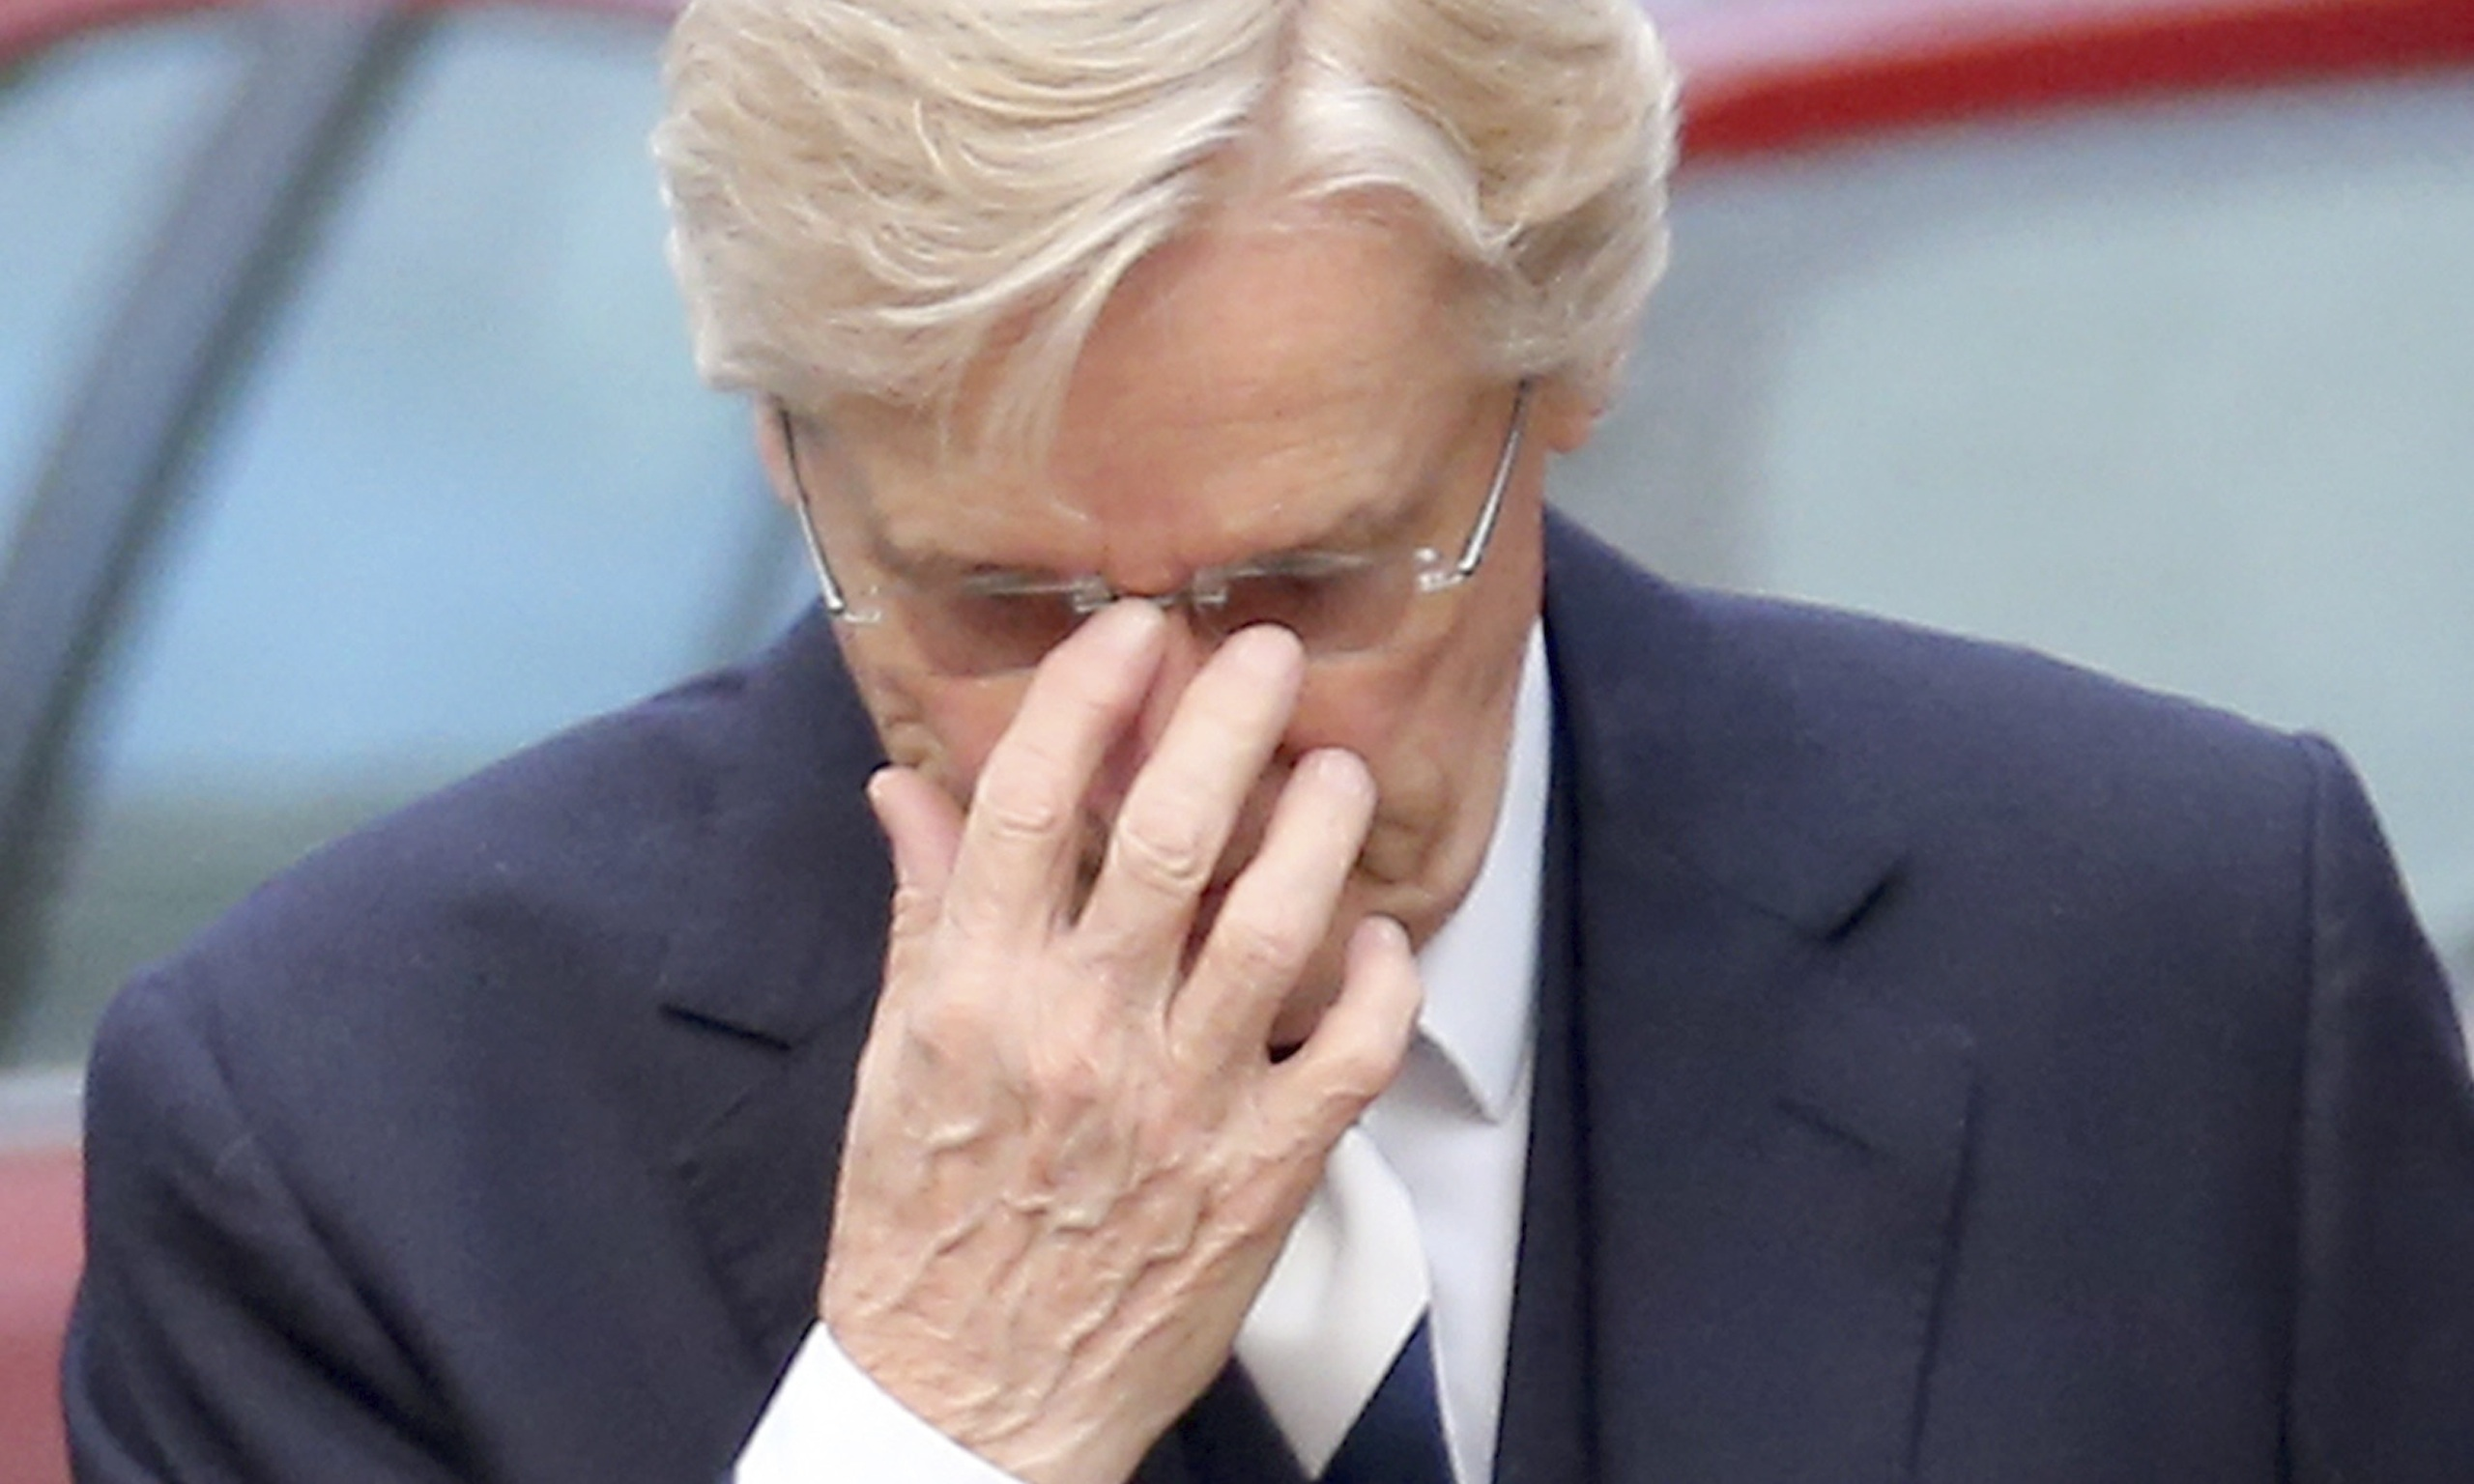 Bill Roache 'was like an octopus', sexual abuse trial hears